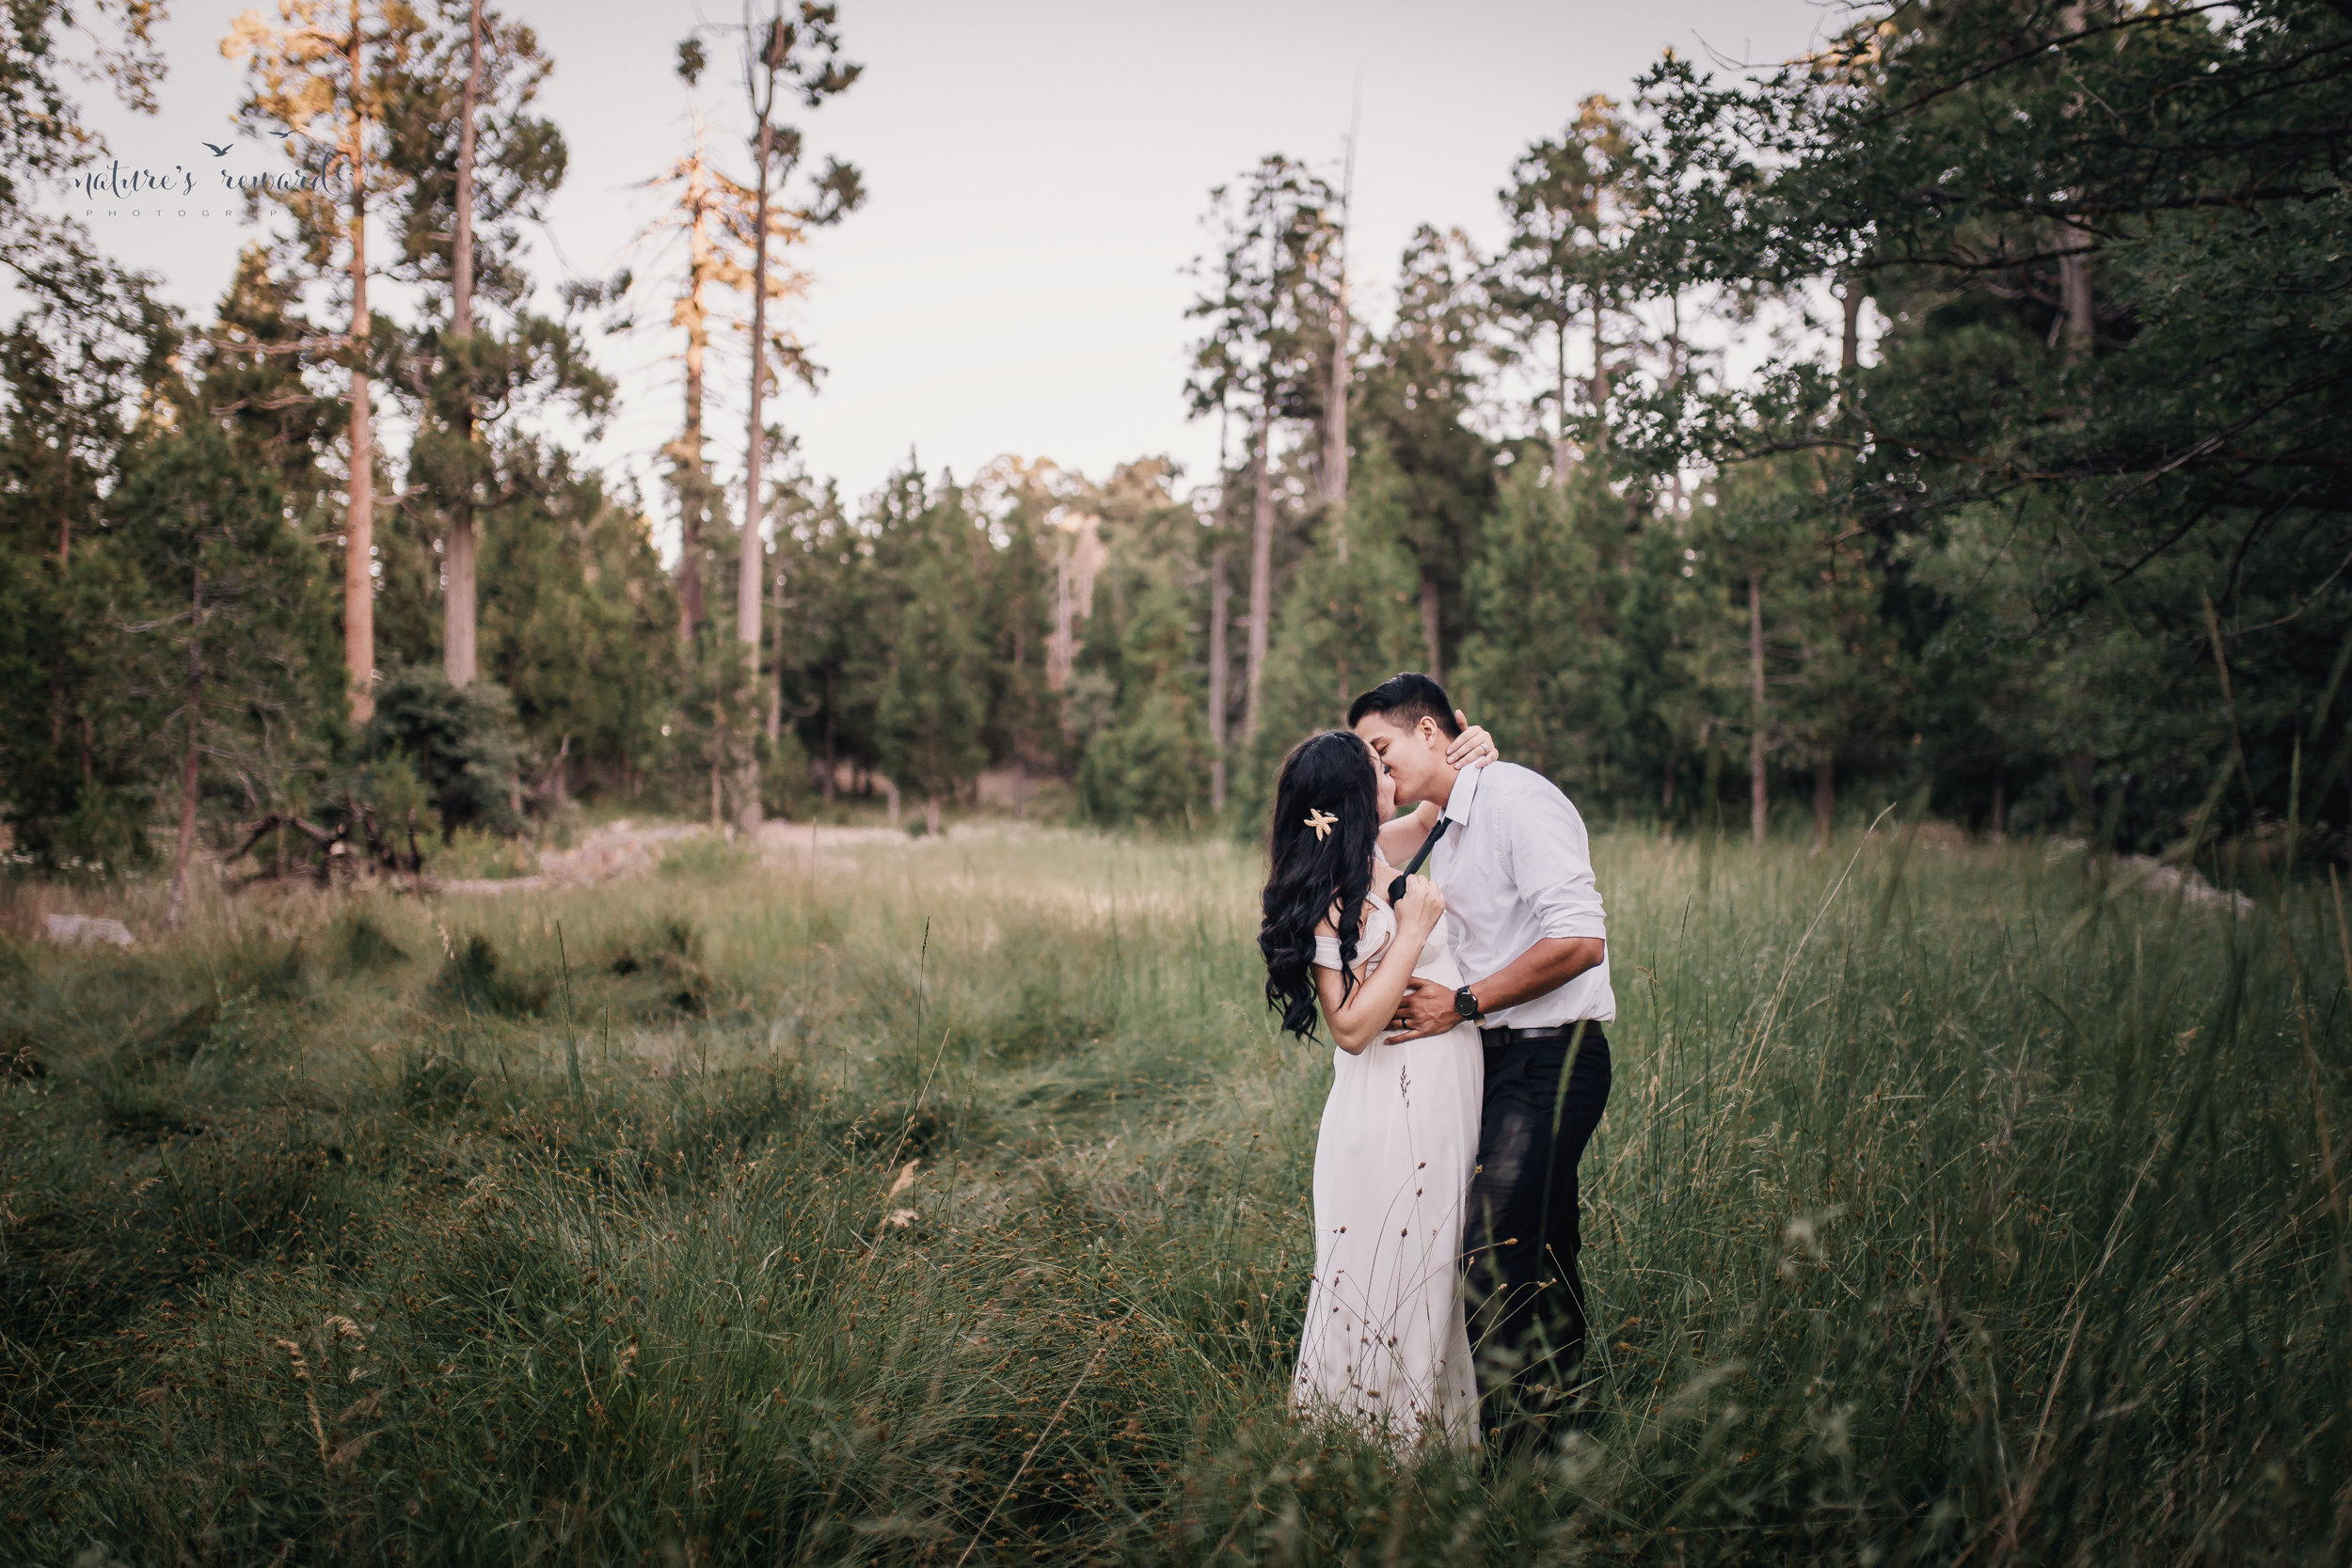 The kiss in a field surrounded by trees in this bride and groom portrait by Nature's Reward Photography